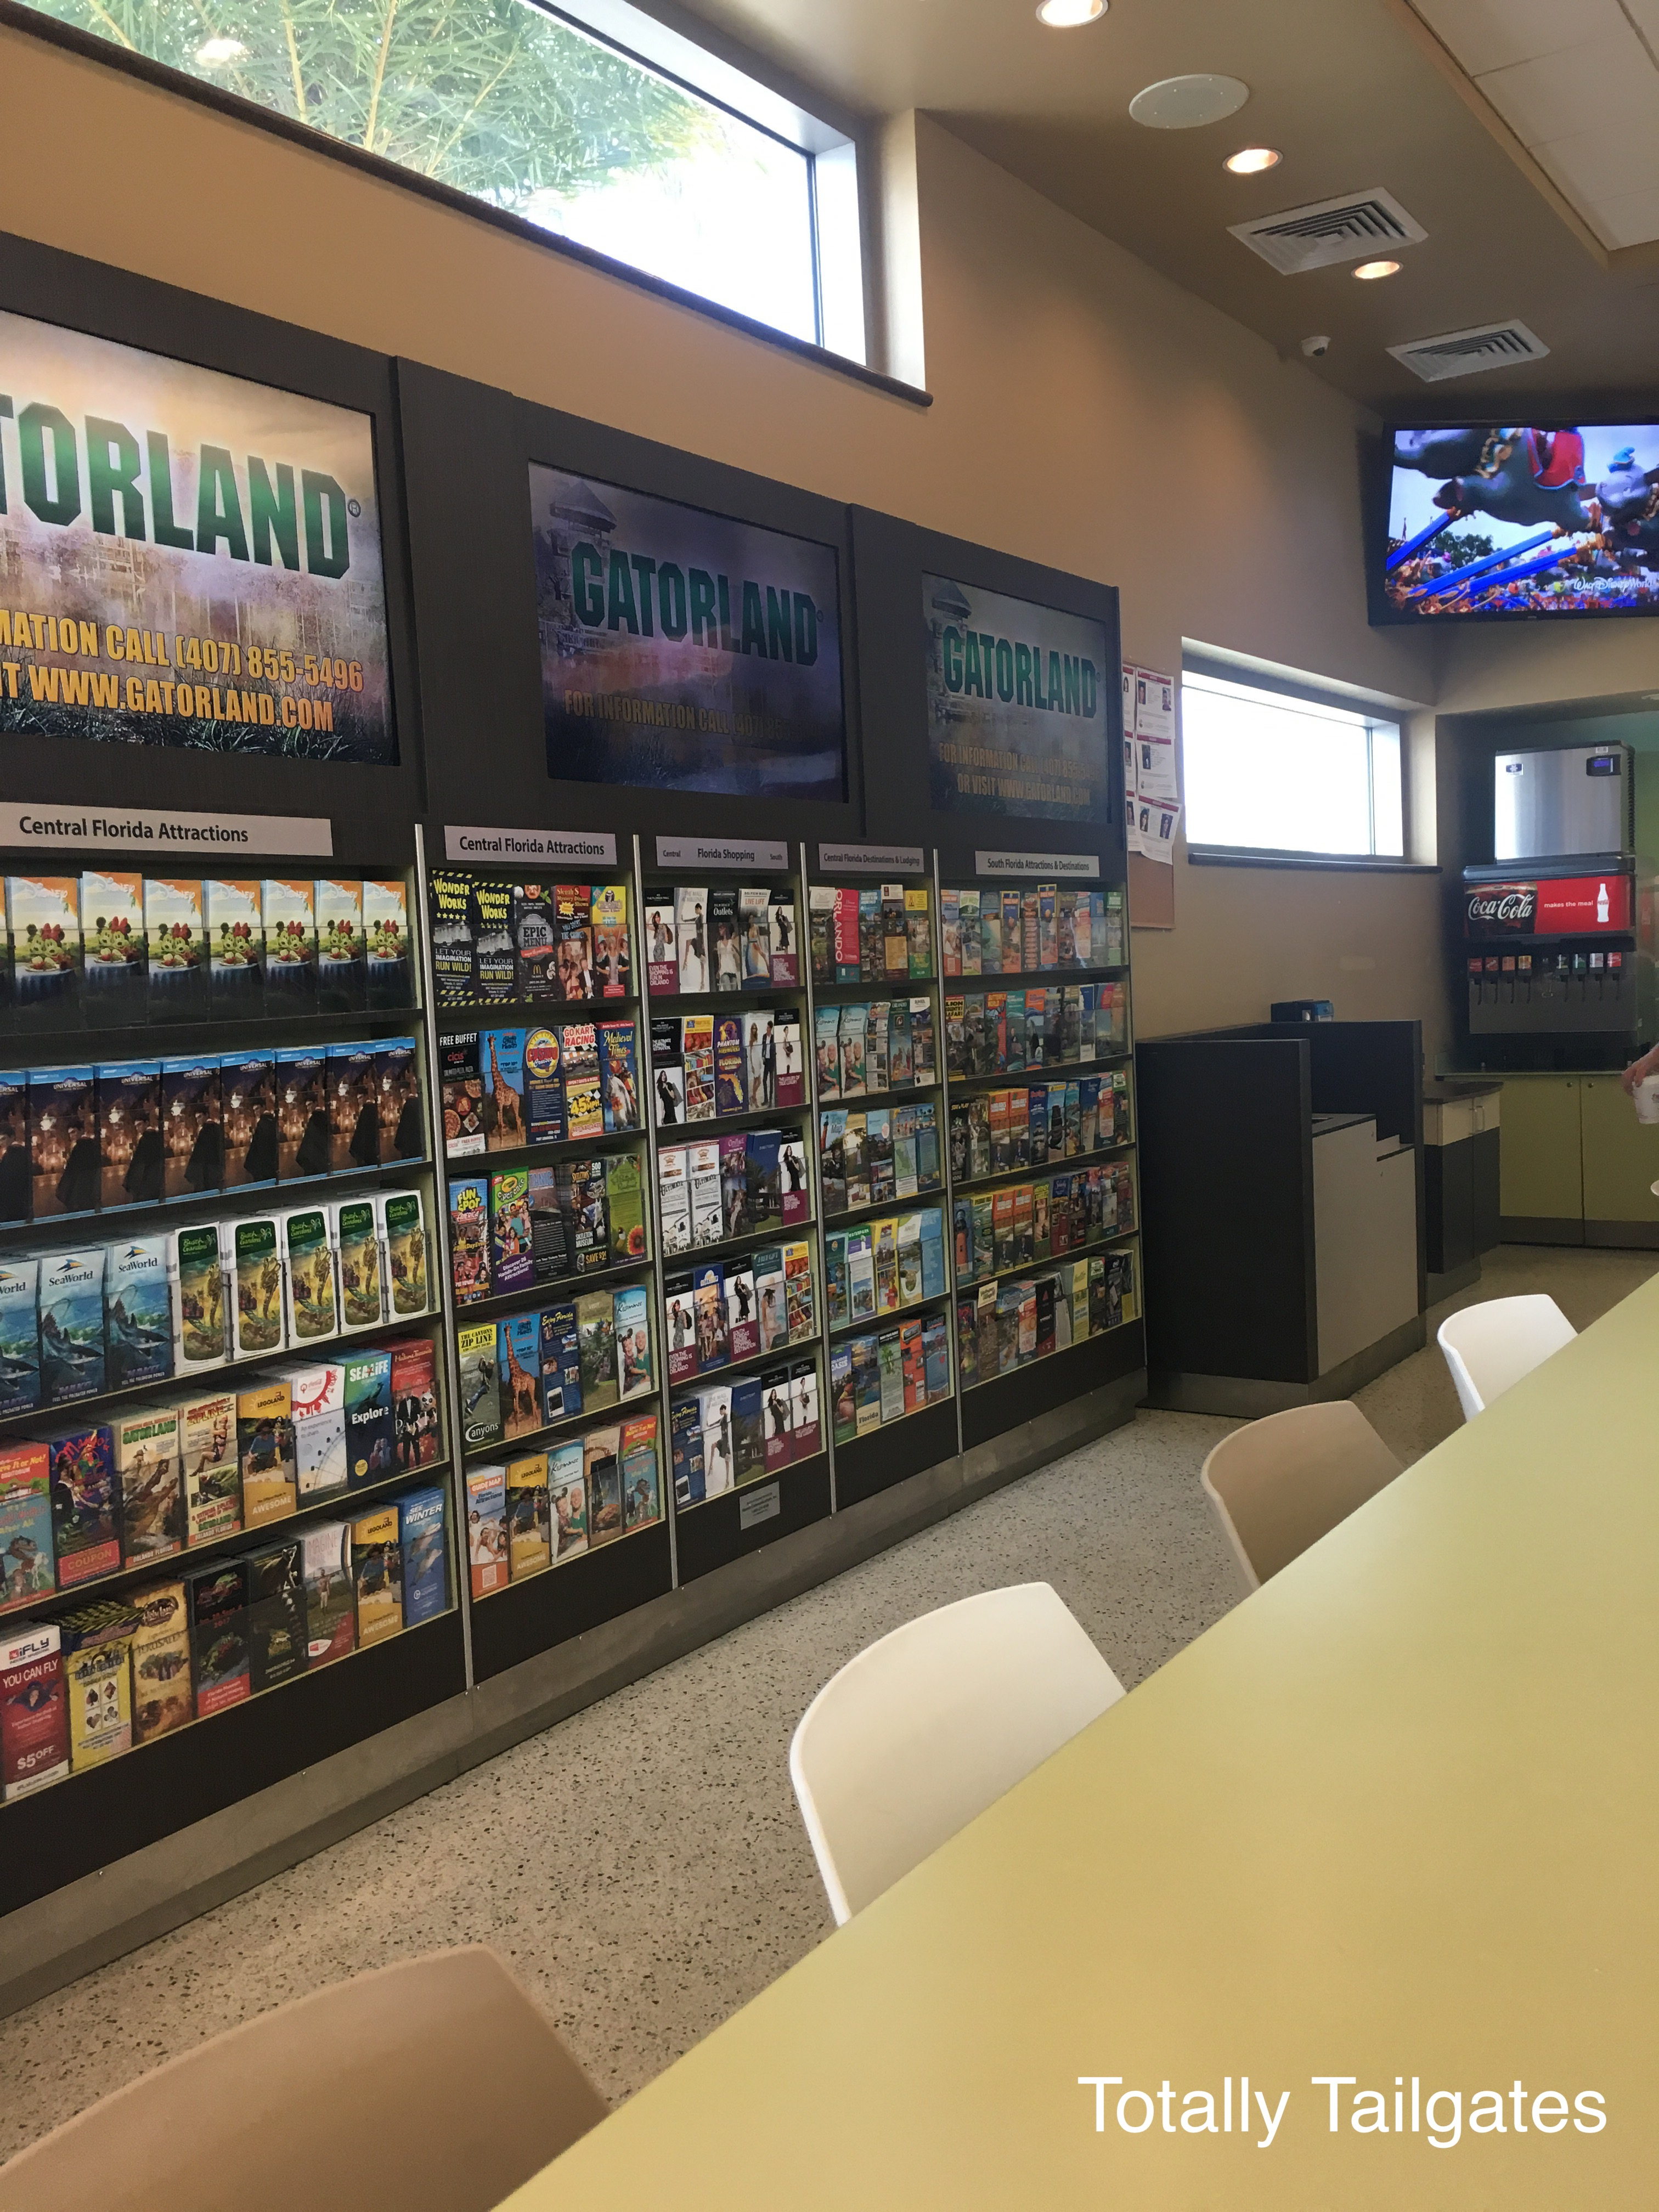 A Florida Turnpike Rest Stop.